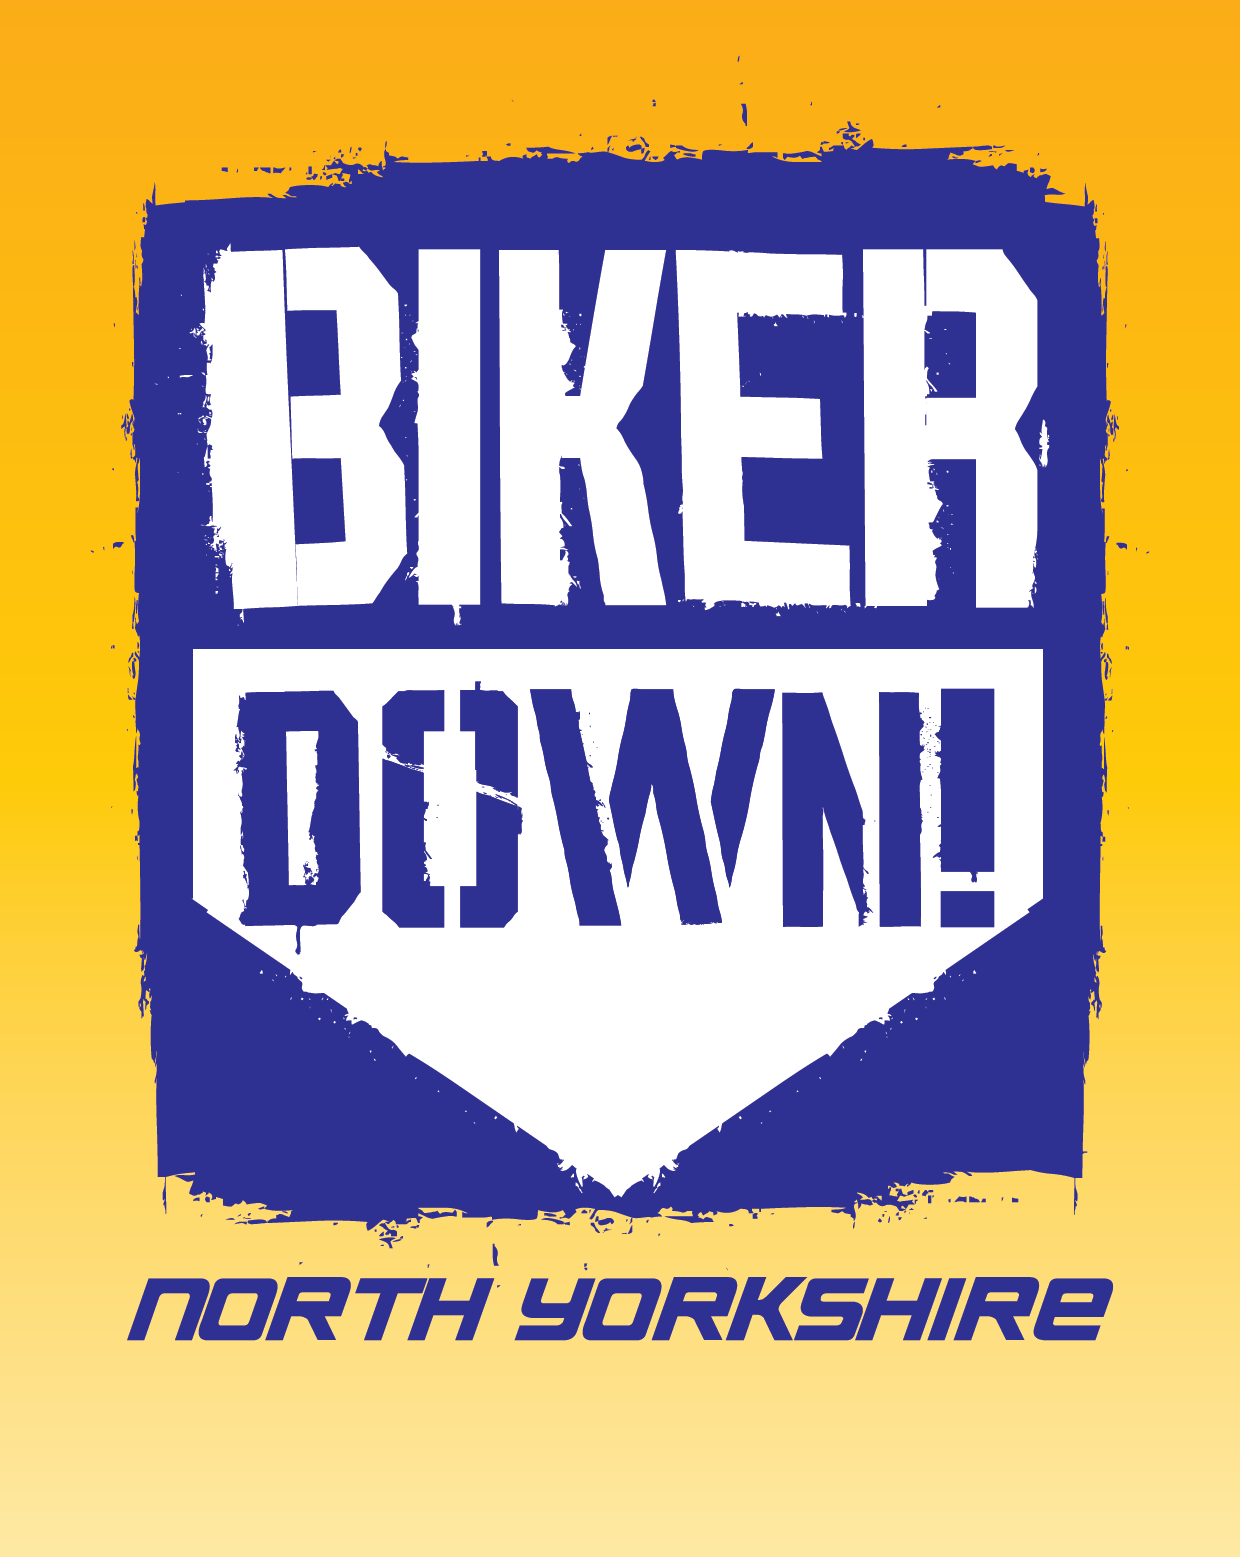 Biker Down! regional logos RGB_North Yorkshire - no strap colour